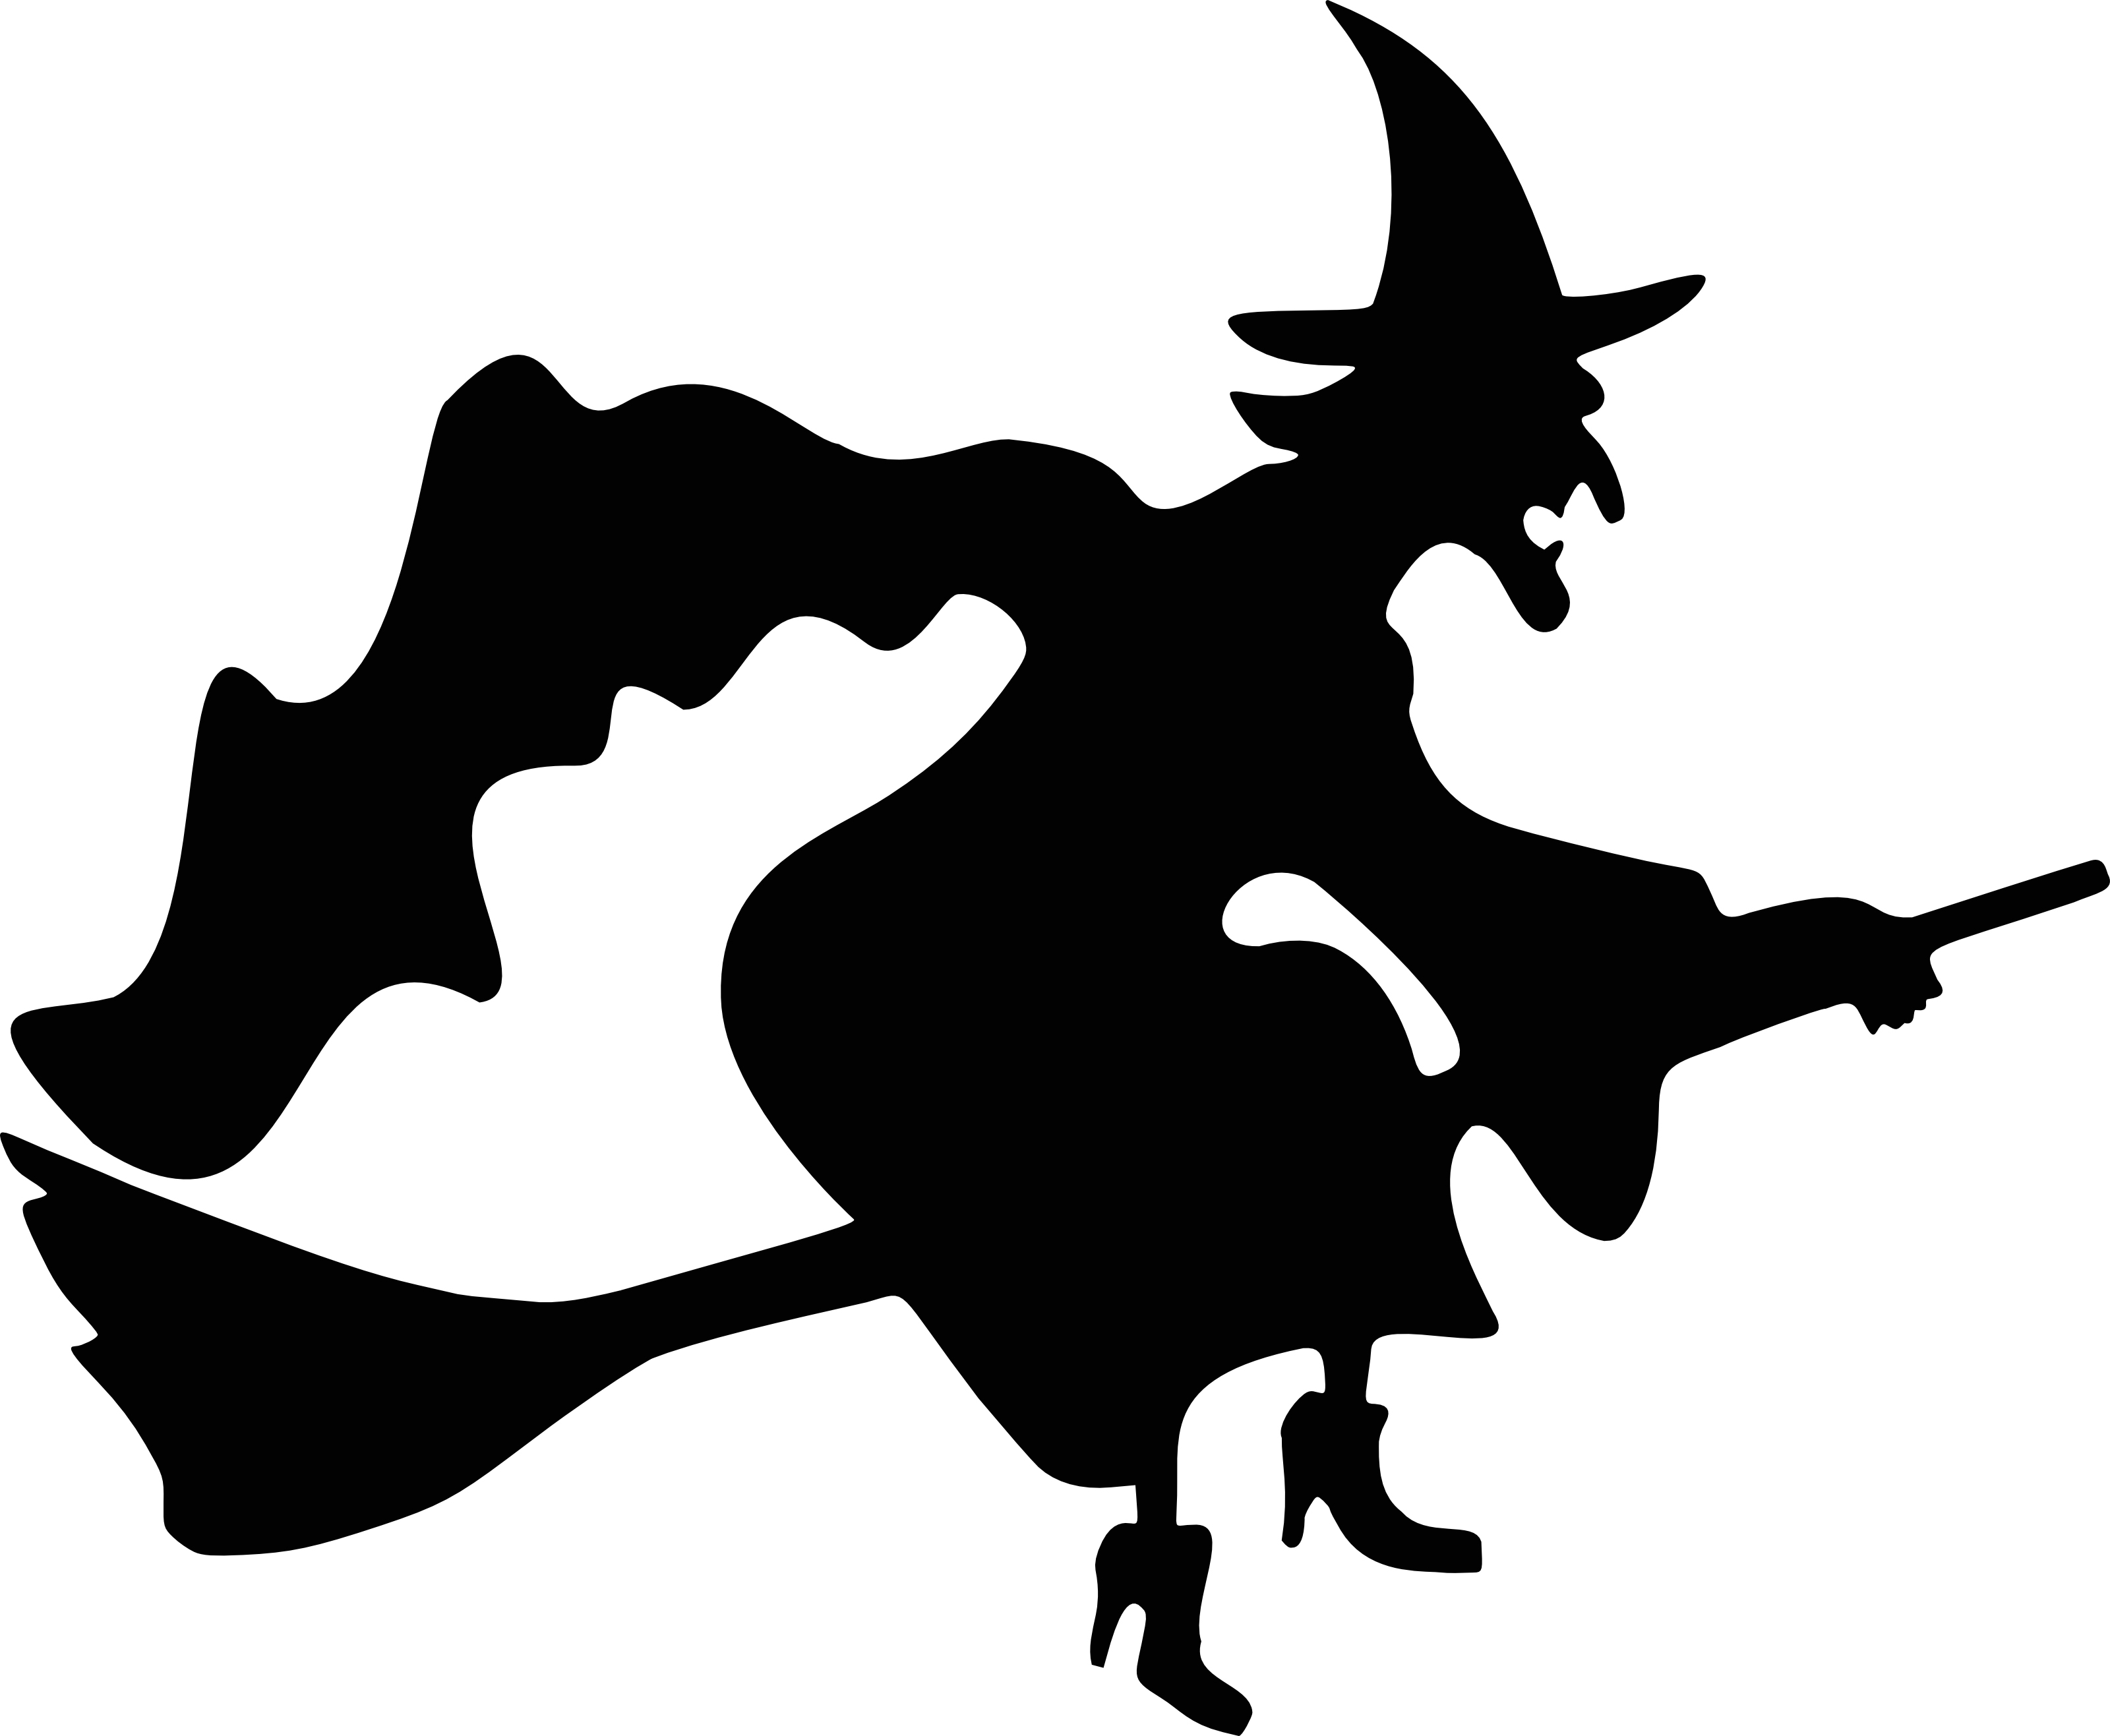 Wizard of oz clipart black and white banner Free Wizard Of Oz Clipart Black And White, Download Free ... banner